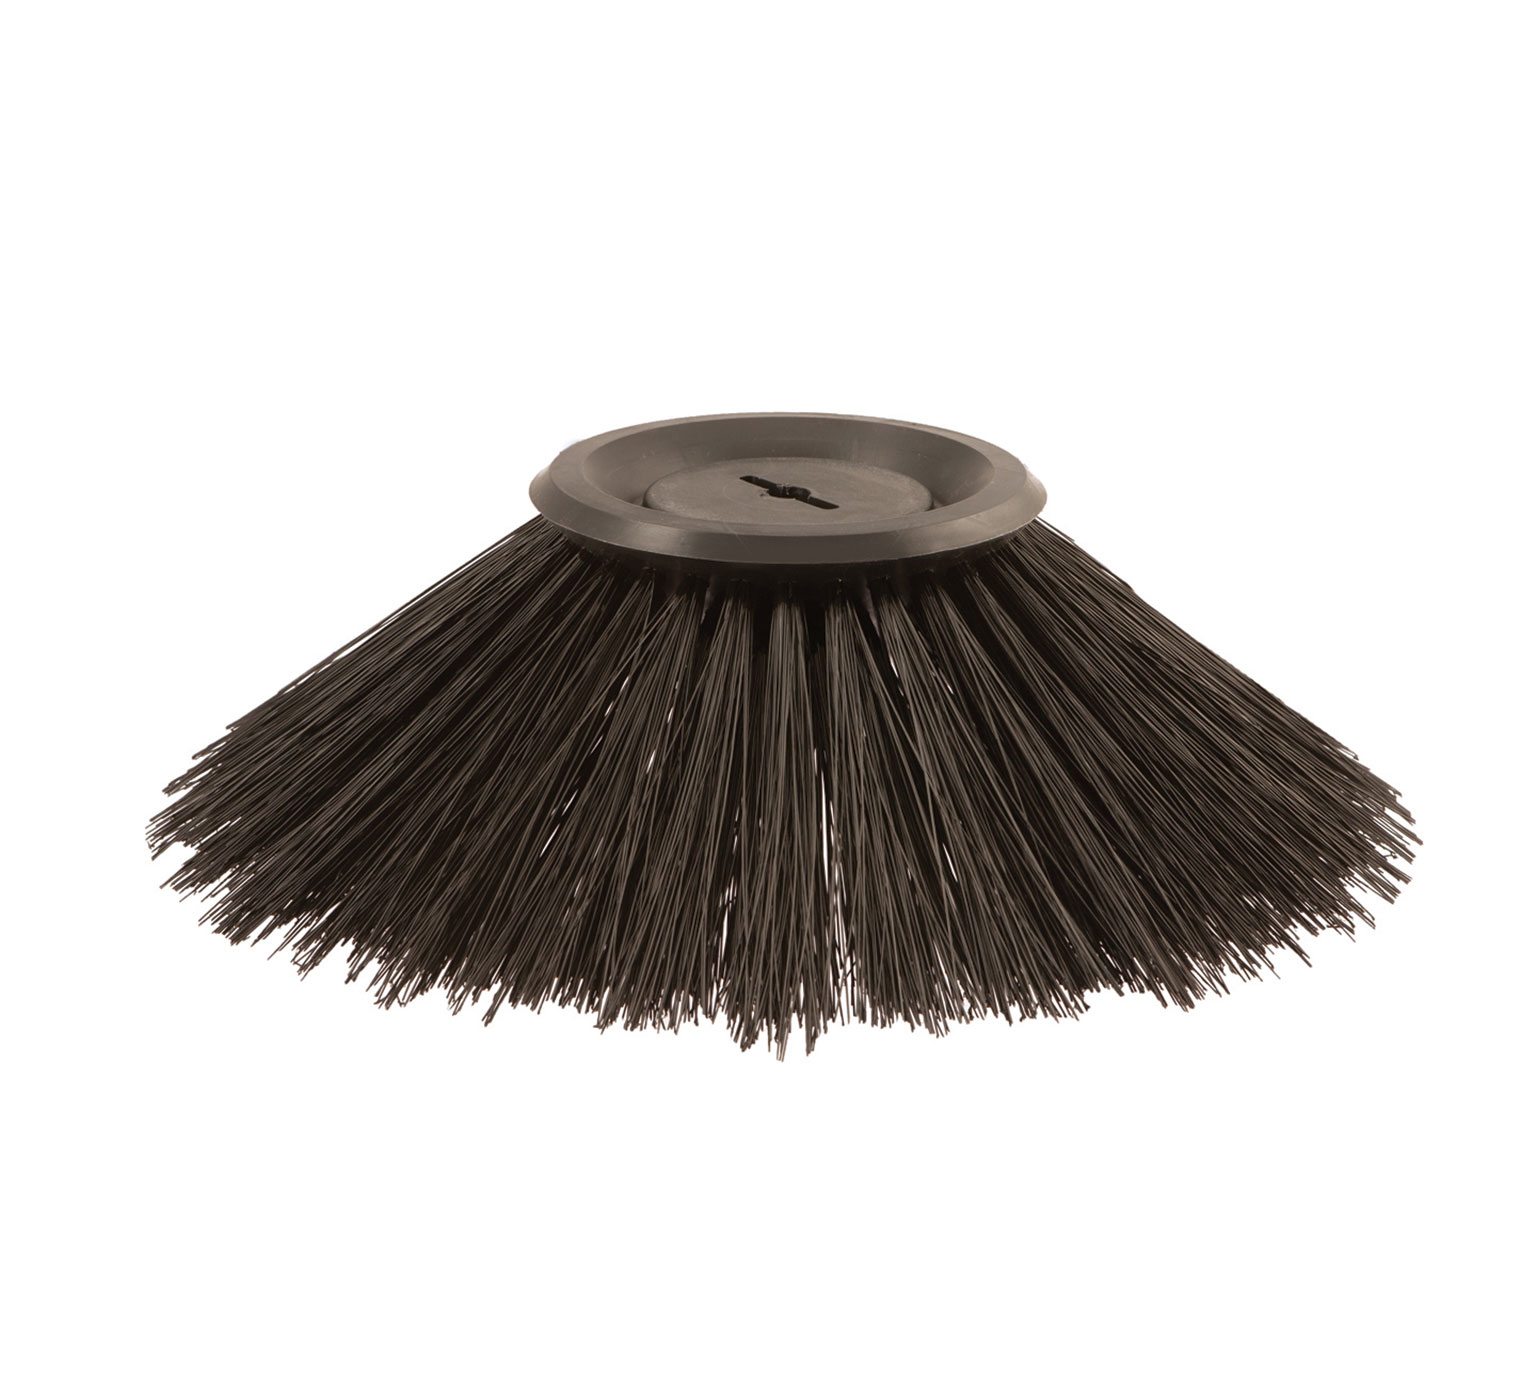 384473 Polypropylene Disk Sweep Brush – 16.5 in / 419 mm alt 1